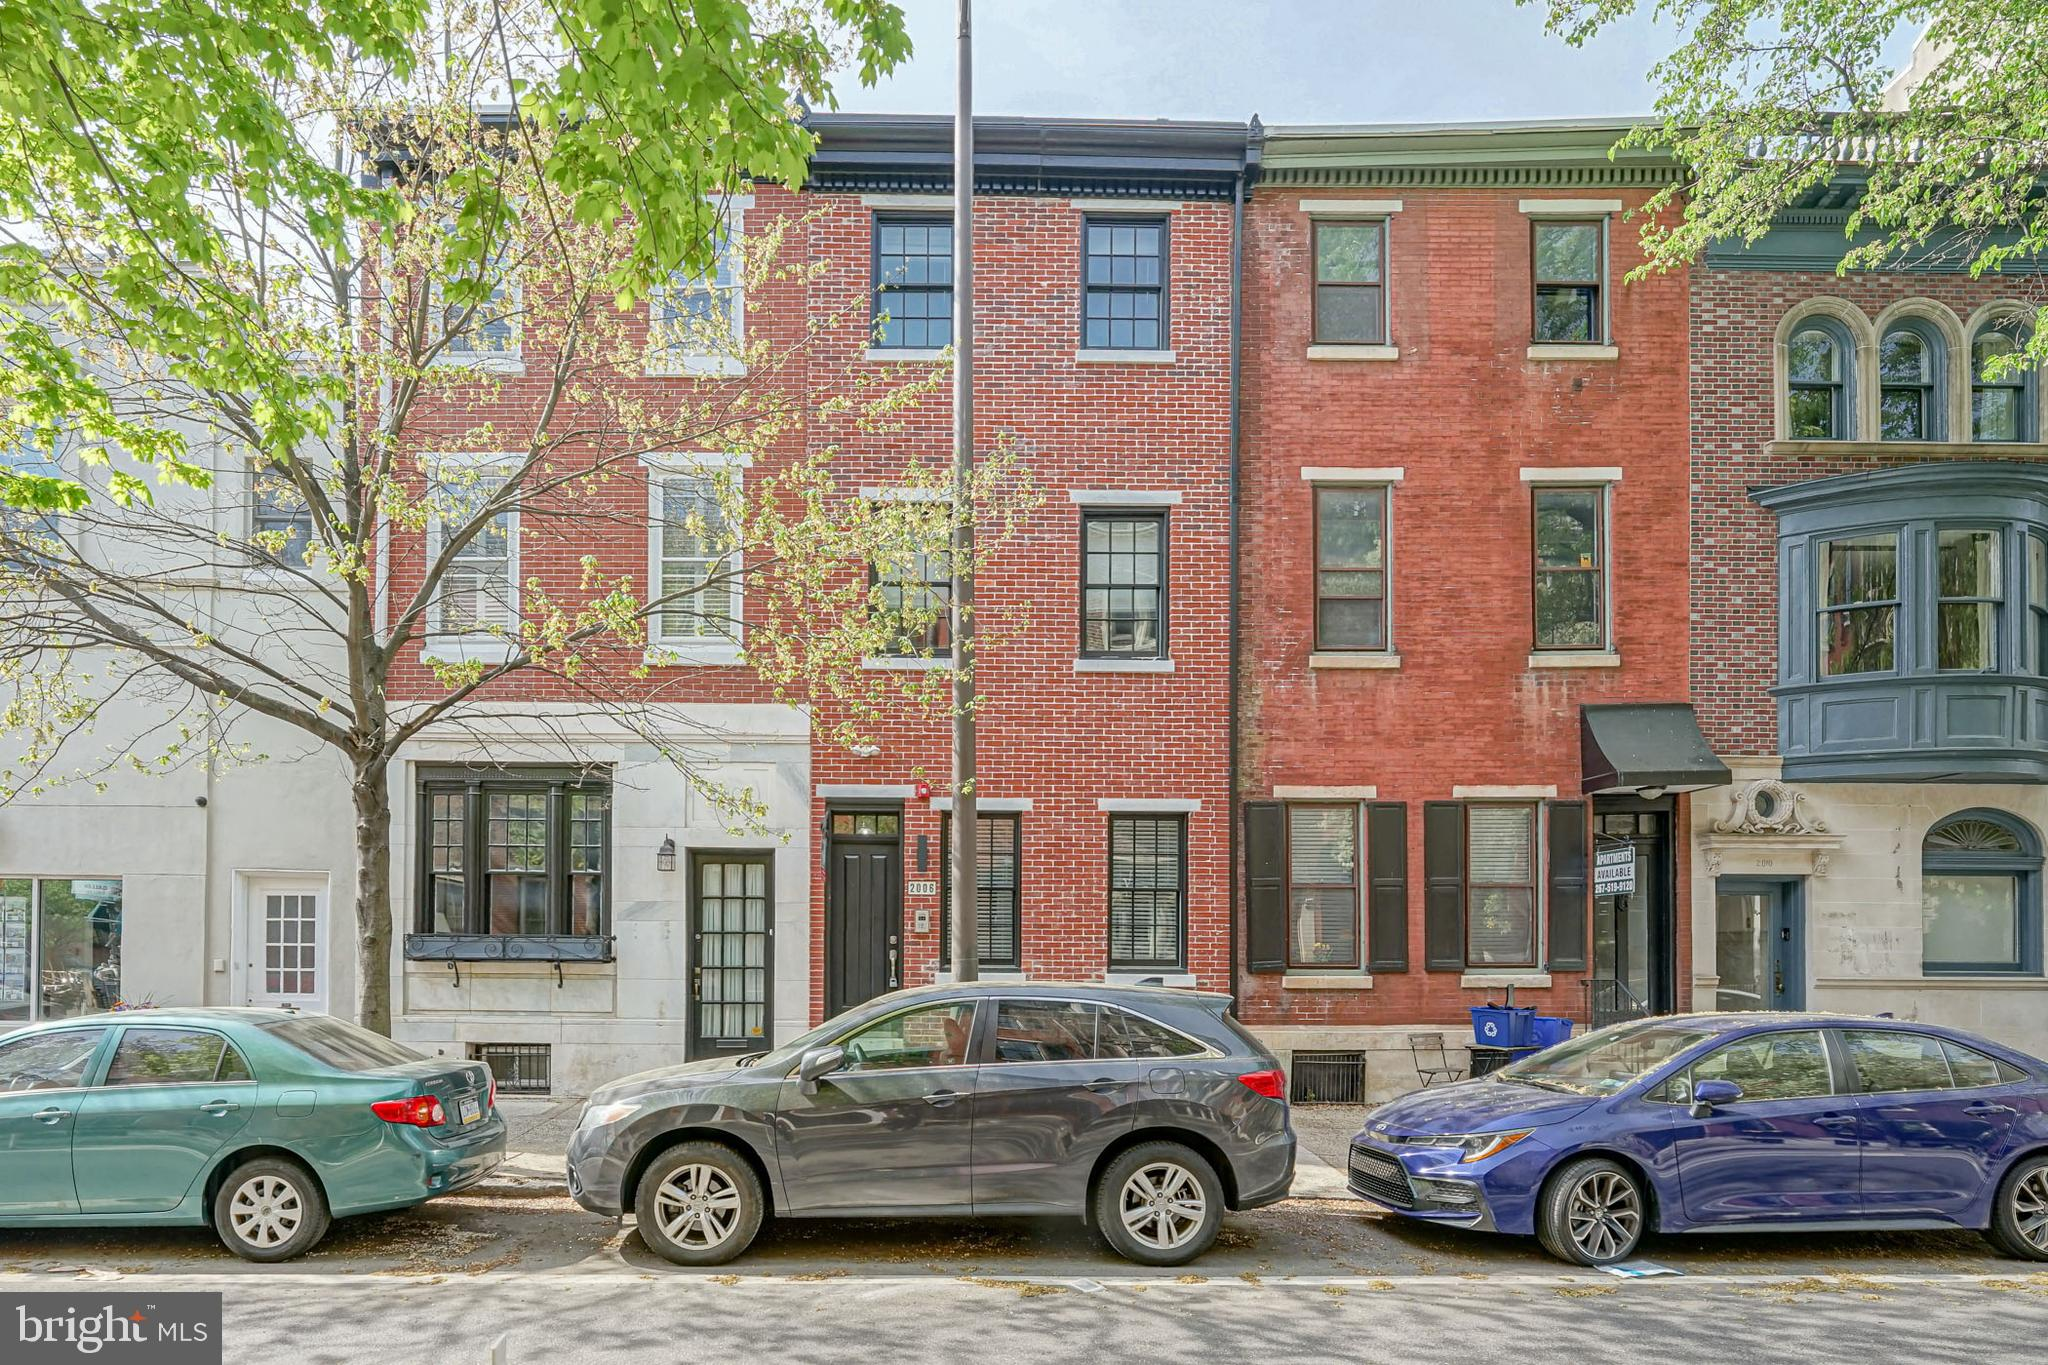 Triplex for sale in the heart of Rittenhouse Square! Renovated top to bottom in 2018.  All new mechanicals, appliances, flooring, you name it! 1- 2 Bed/2 bath unit and 2- 1 Bed/1 bath units. All units are separately metered and have in unit washer/dryer, thermostat and intercom to front door. Gorgeous modern finishes throughout each unit. Steps to Rittenhouse Square, The Schuylkill River Trail, Center City shopping and restaurants. This location can't be beat!